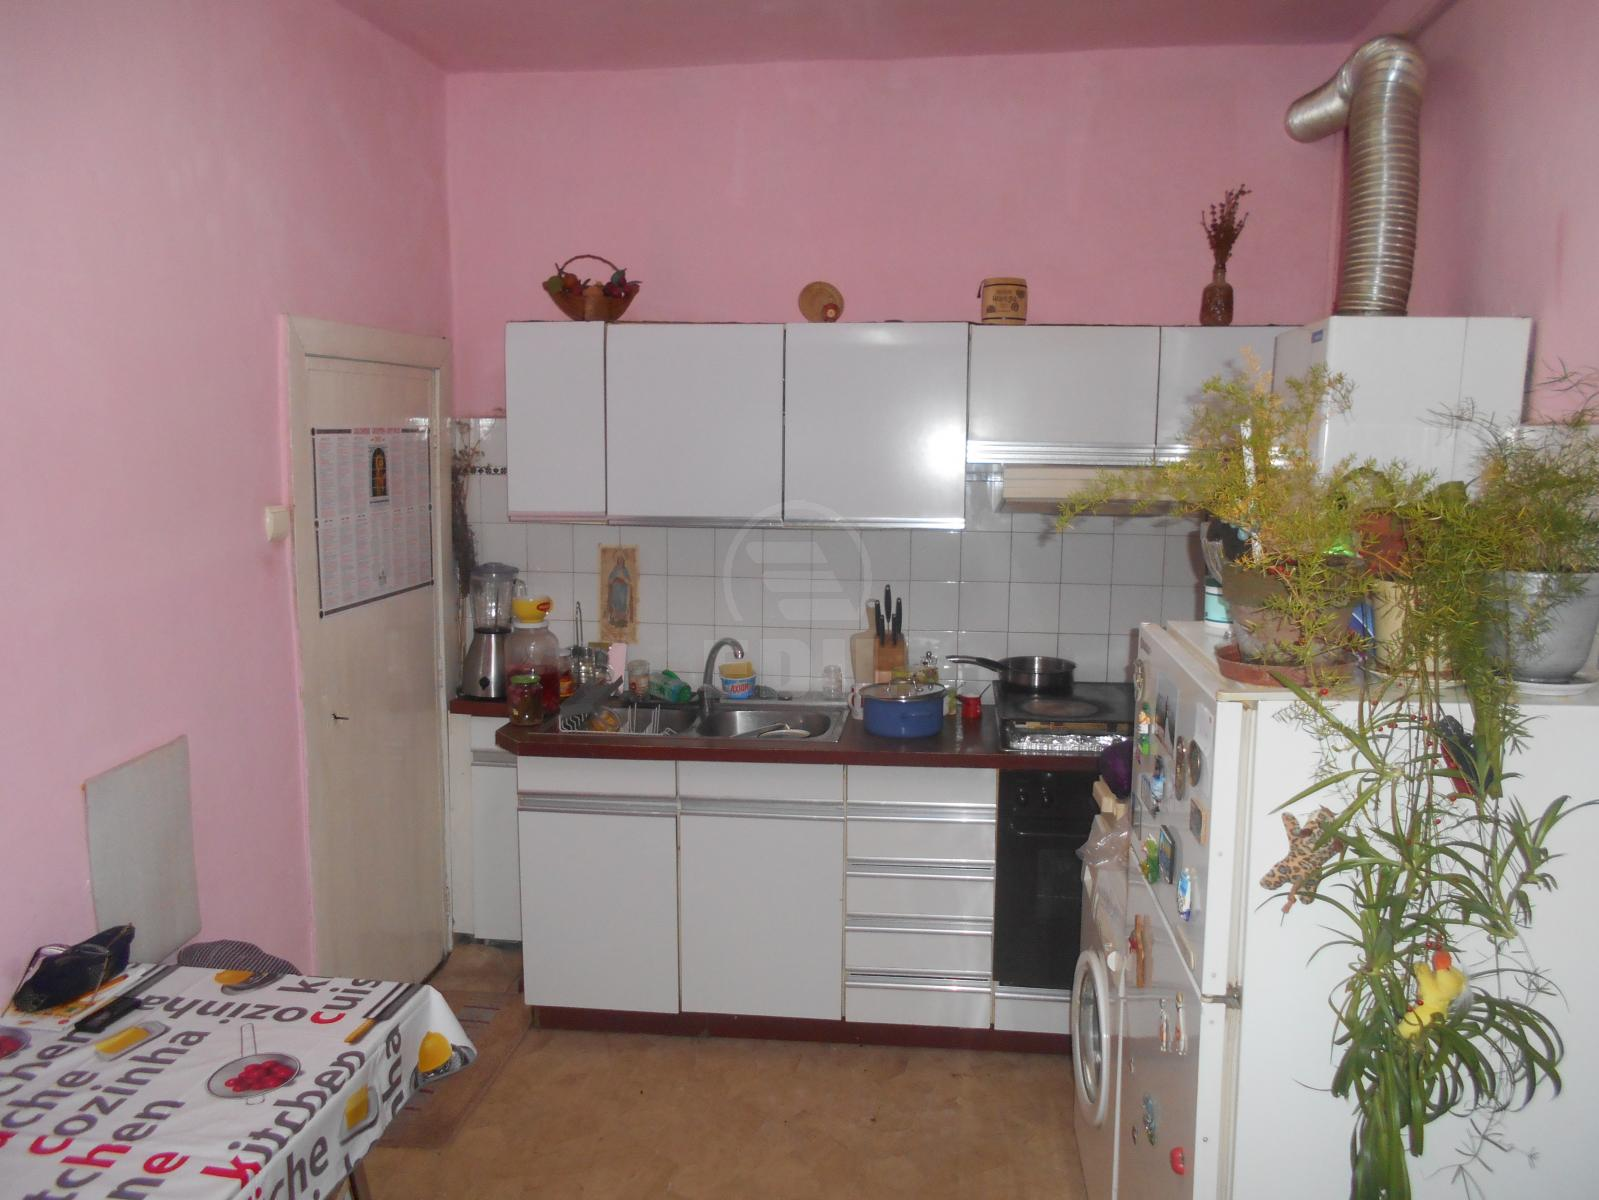 House for sale 3 rooms, CACJ271846-1